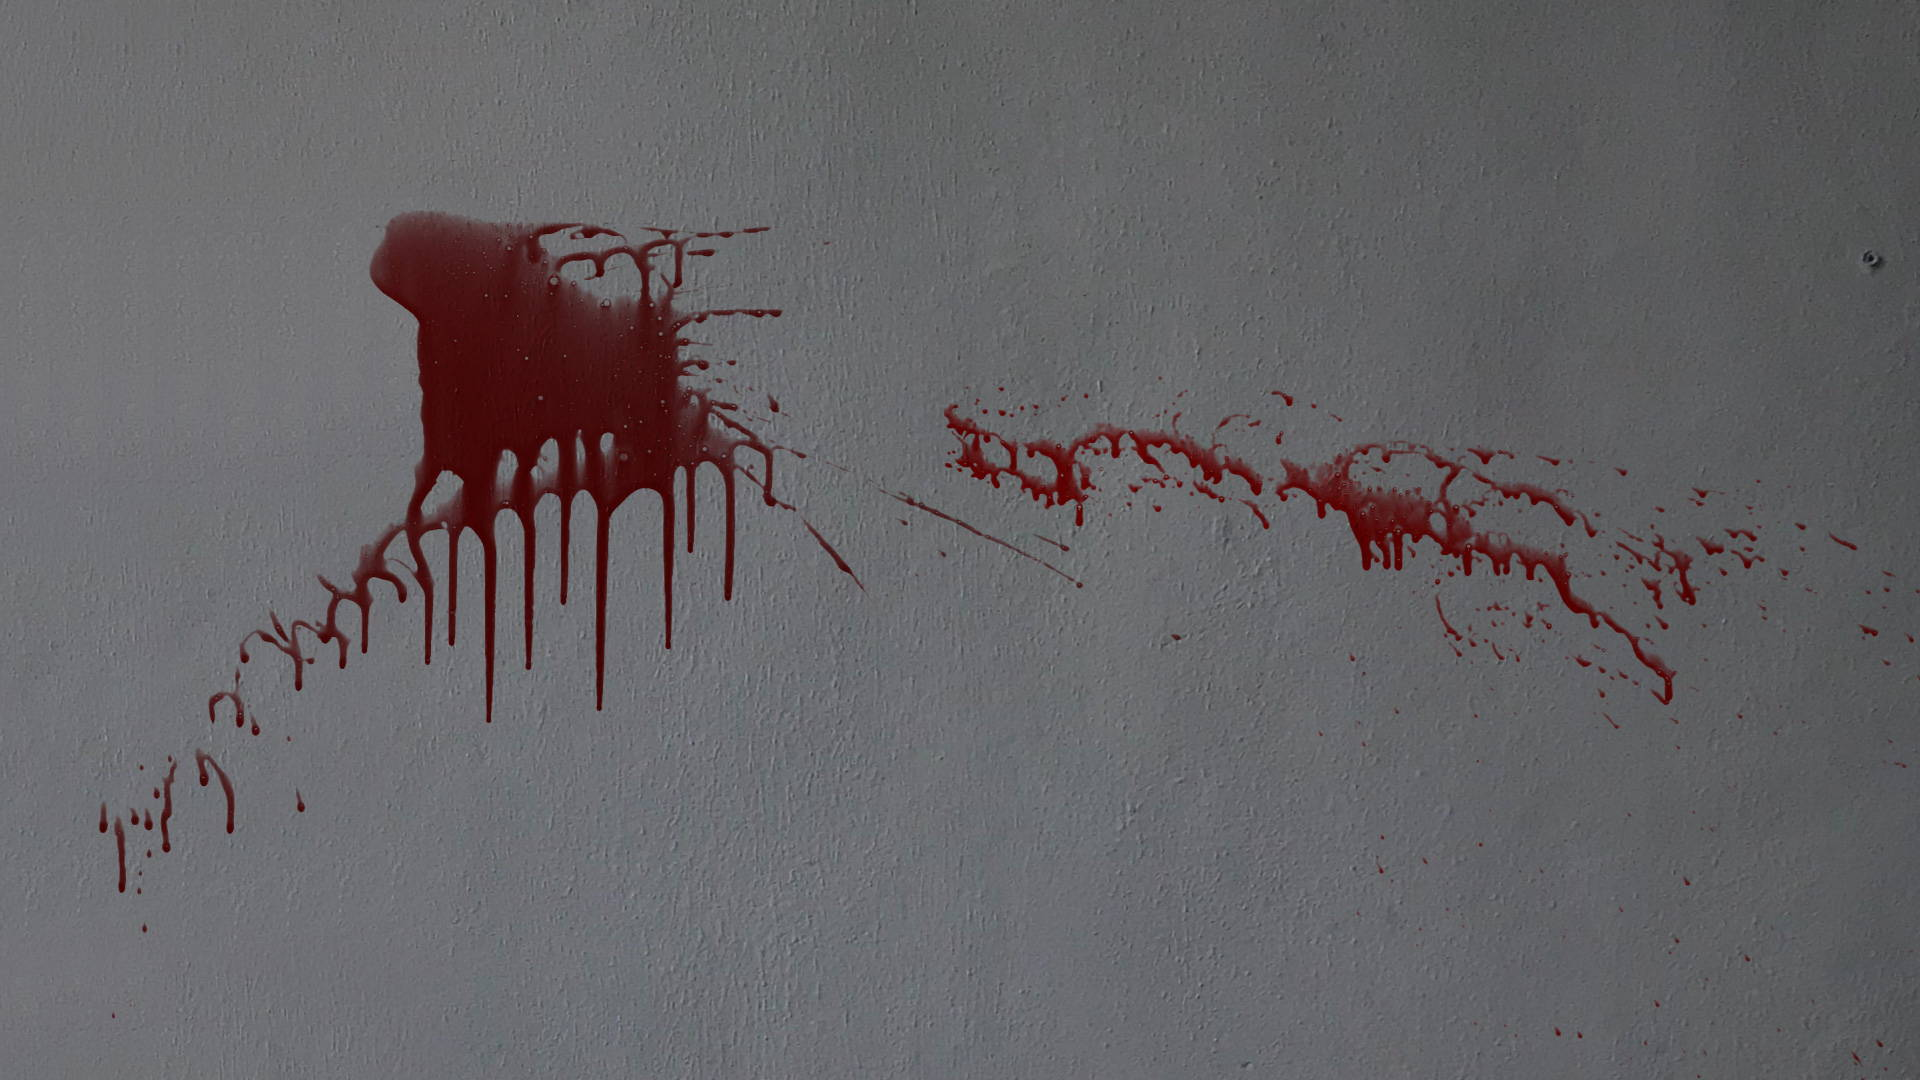 Blood Splatter VFX Stock Footage Elements